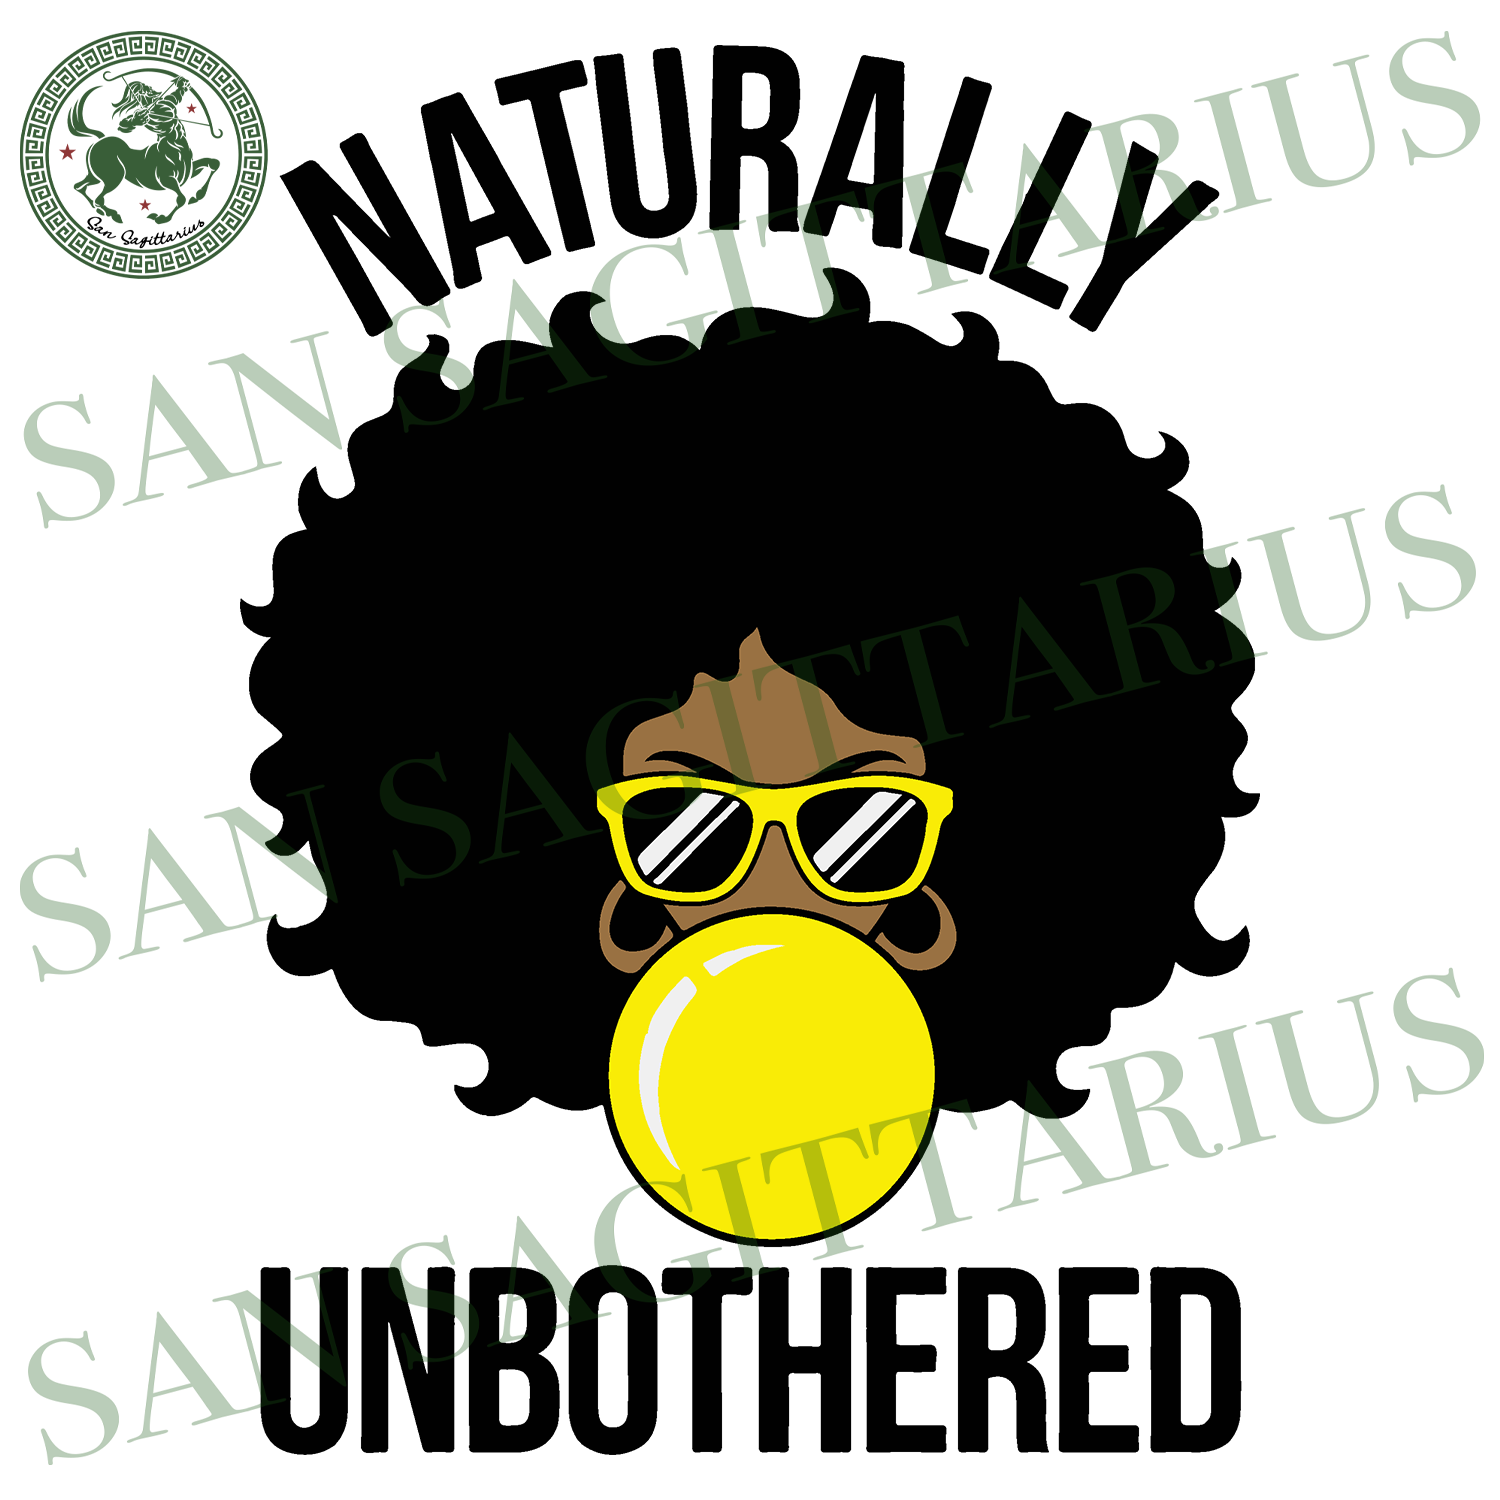 Naturally Unbothered, Black Girl Svg, Afro Svg, Feminism Svg, Racism Svg, Girl Power, Afro Girl, Afro, Afro Svg, Afro Hair svg, Afro vector clipart, Afro art, Black History, Black History Mon